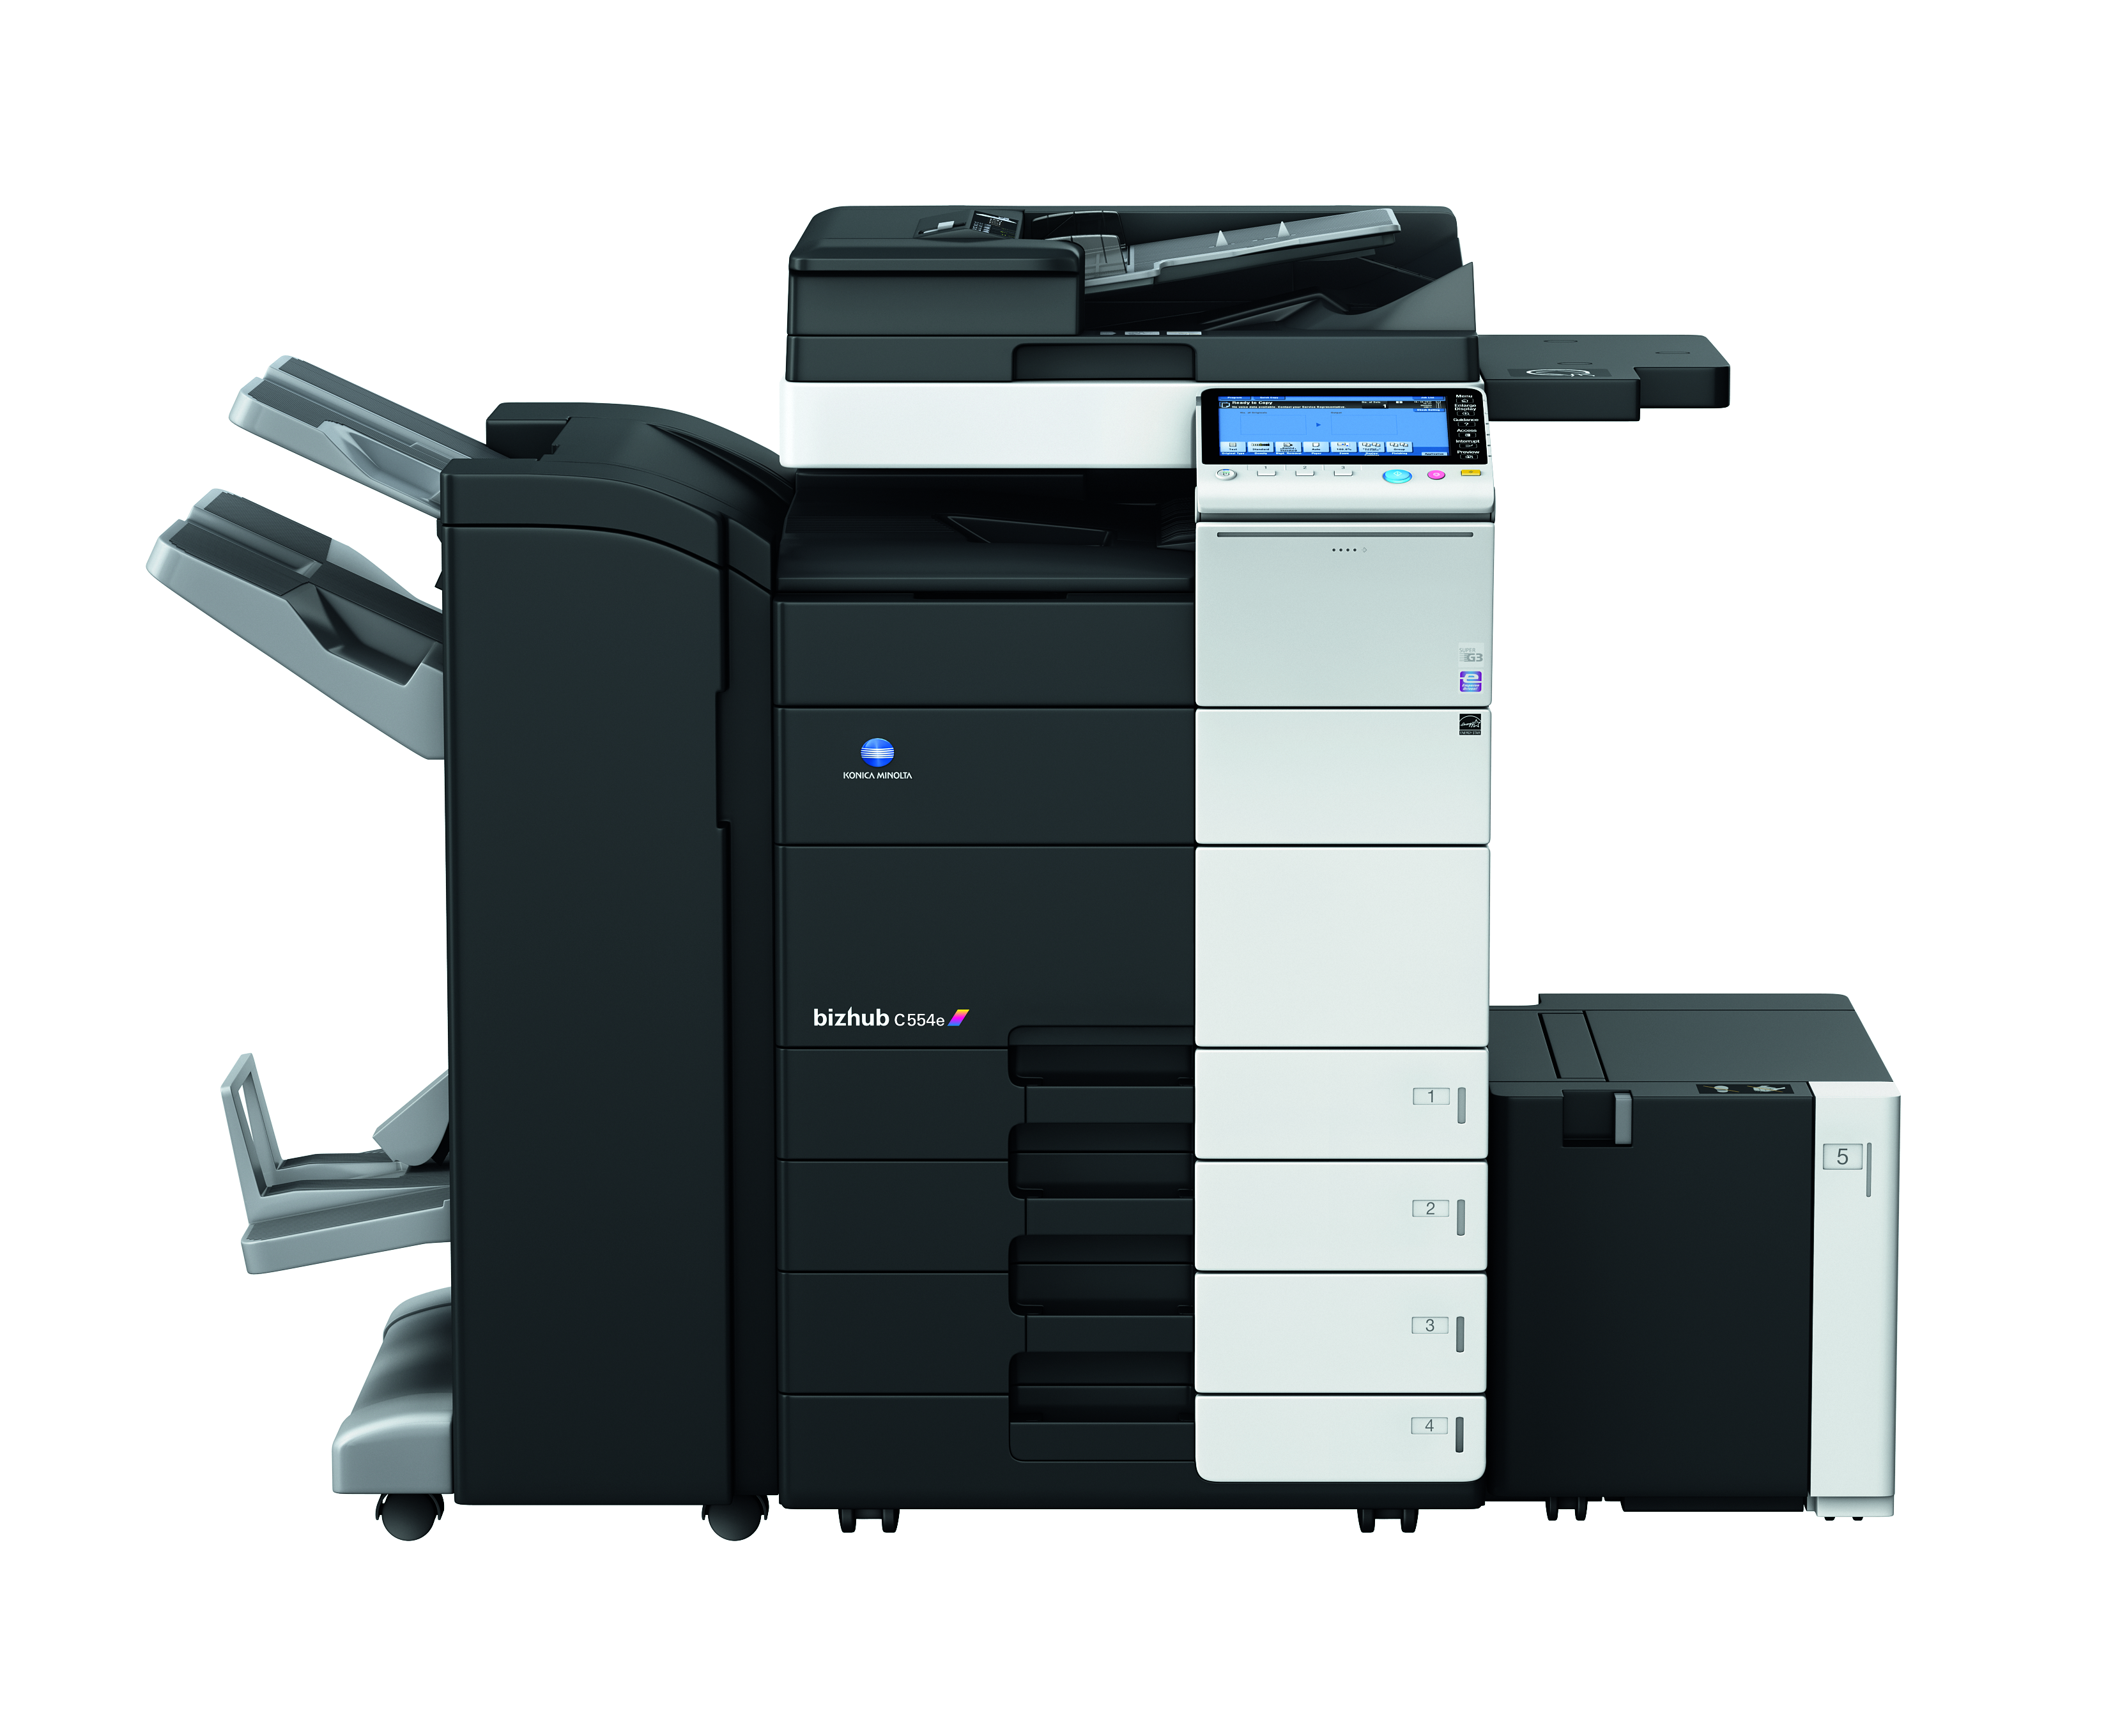 The new bizhub 554e series is designed for speed and productivity,  black-and-white printing, and come packed with capabilities.